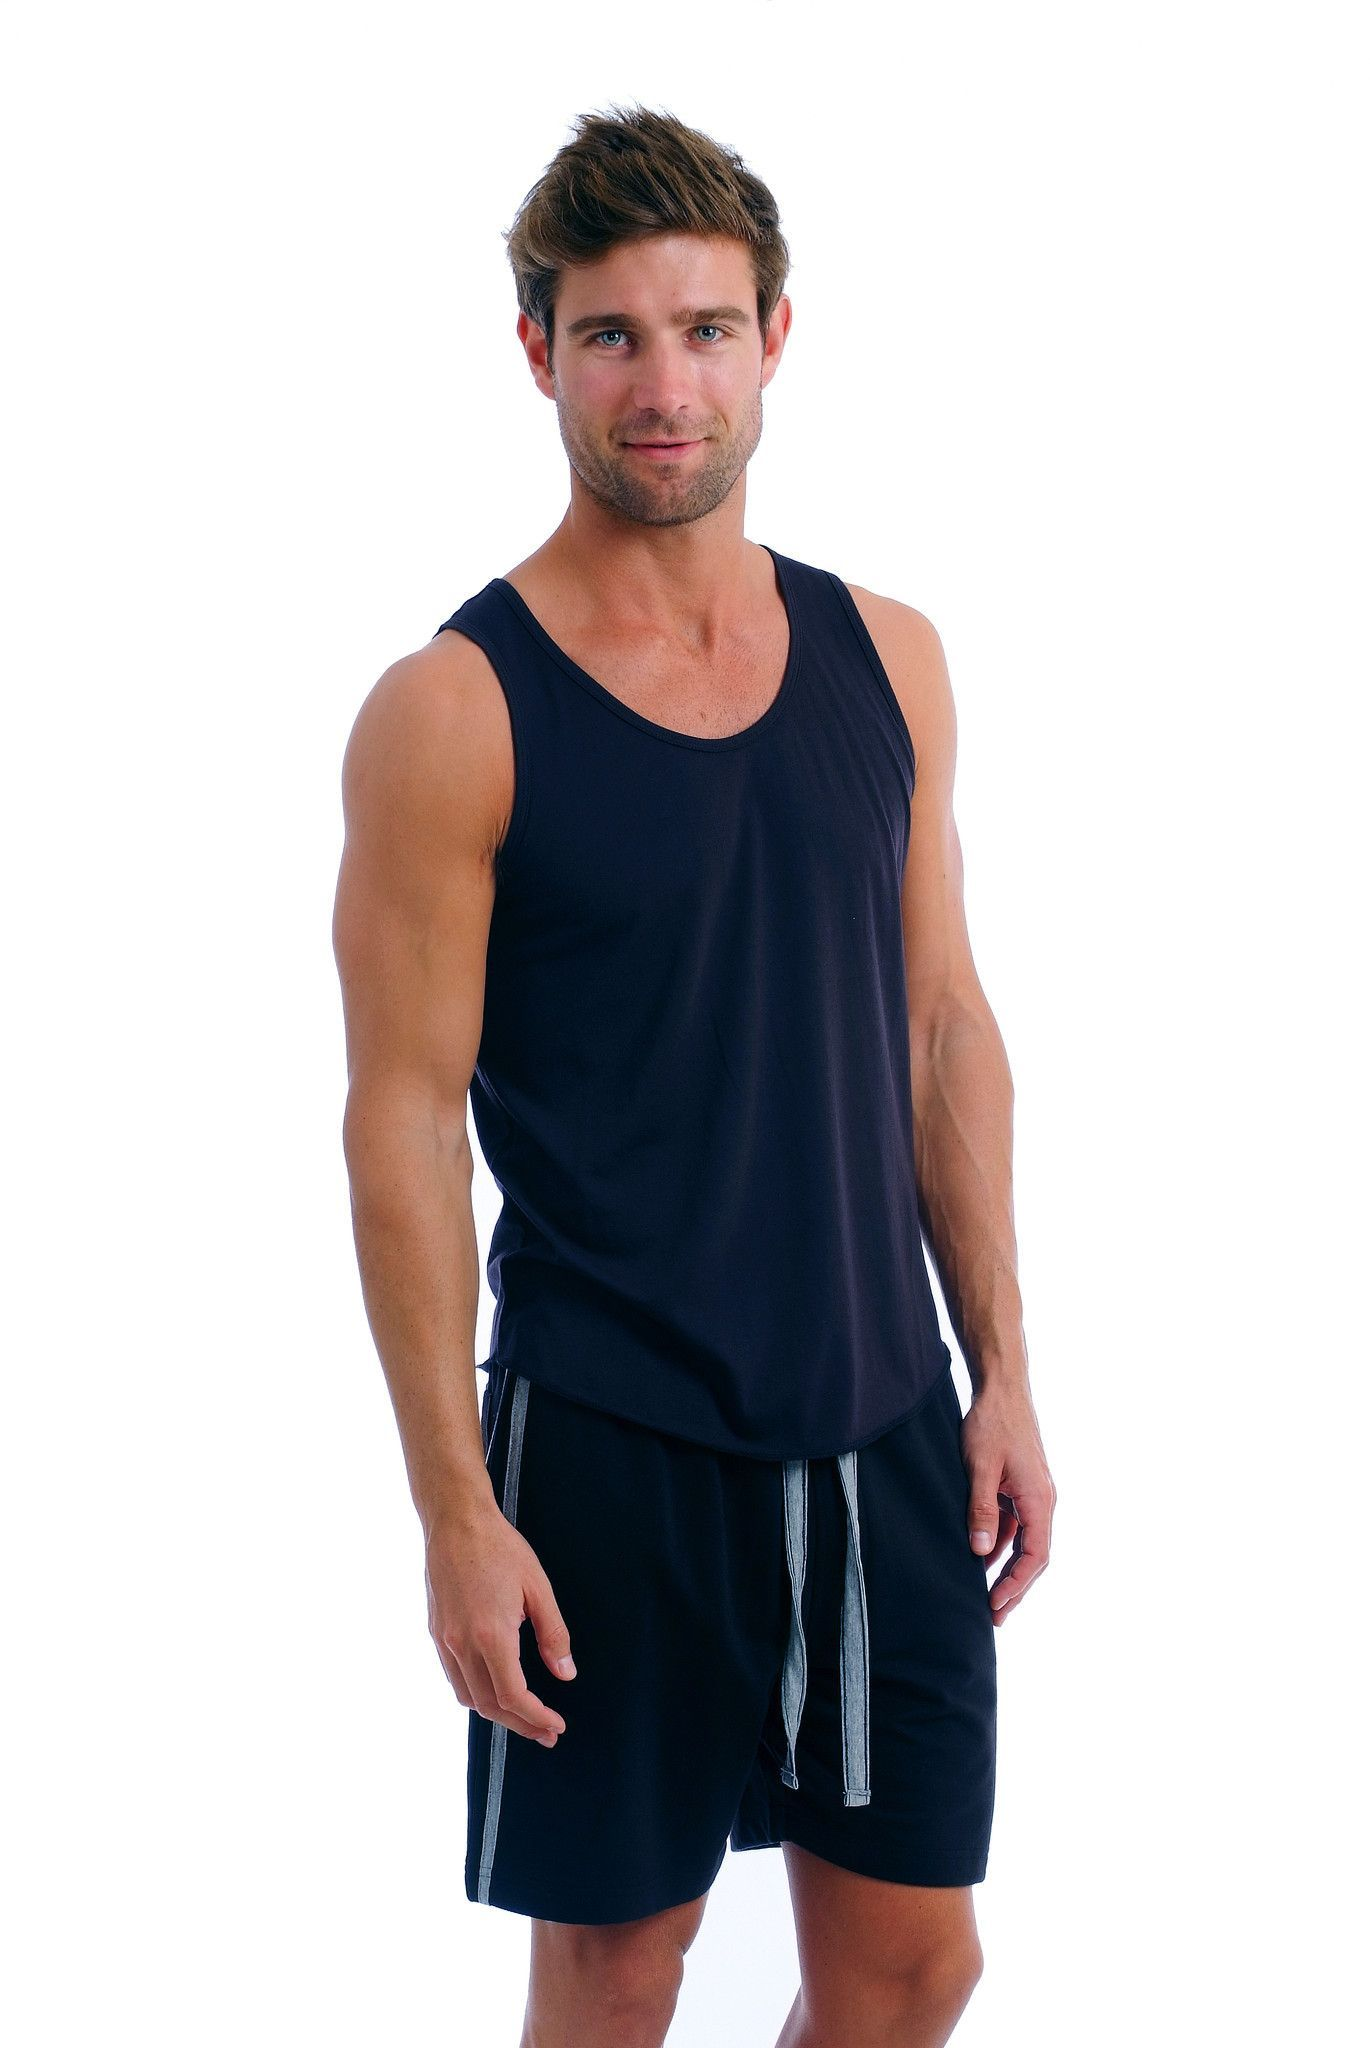 Soft Fitted Cotton Men's Tank Top Athletic tank tops